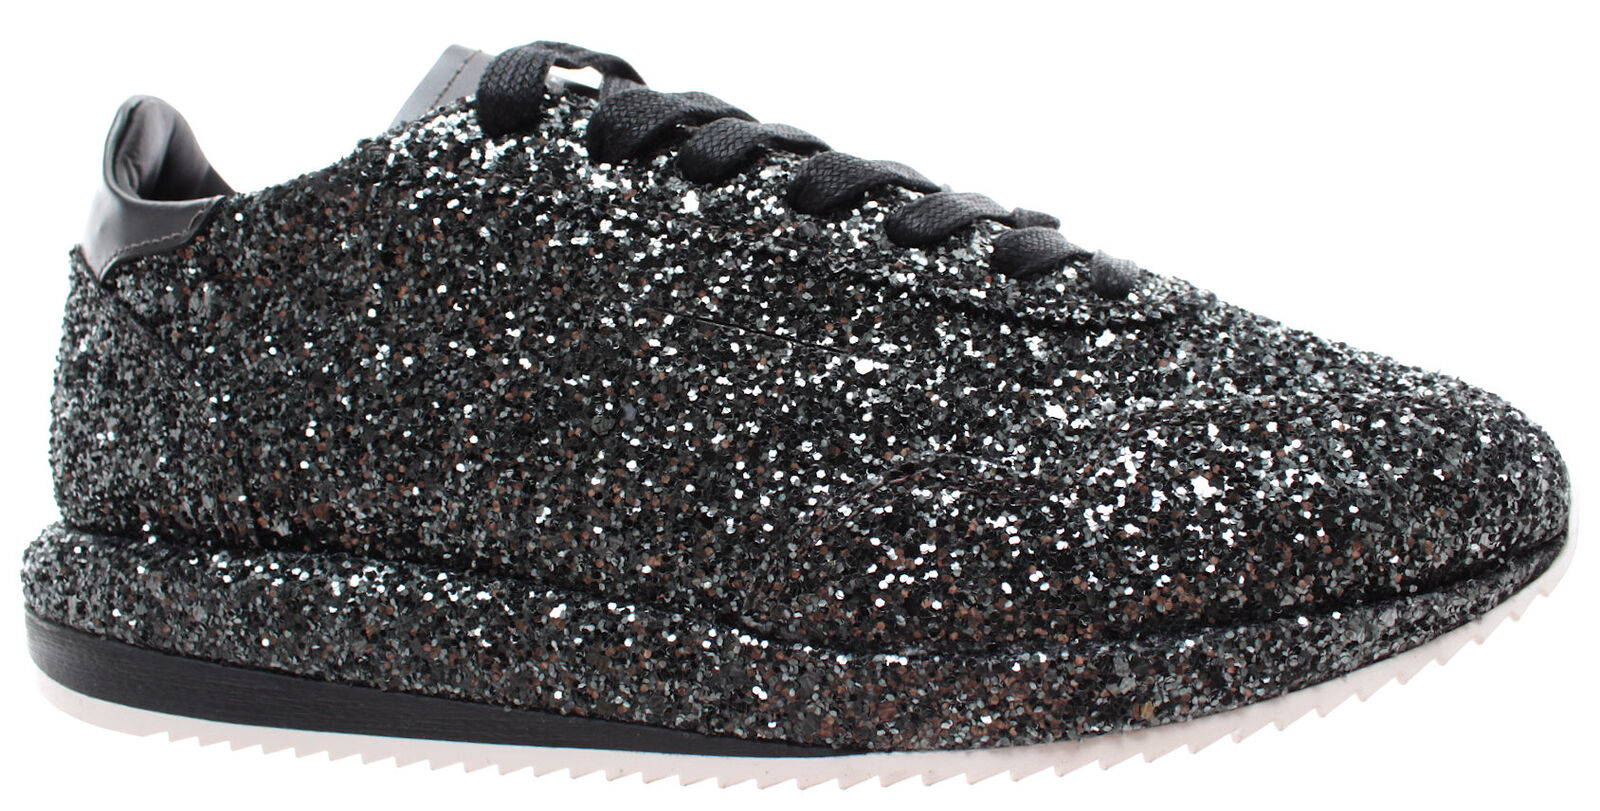 GHOUD Venice Women's shoes Sneakers G2WLGT38 Woman Low Glitter Black  New